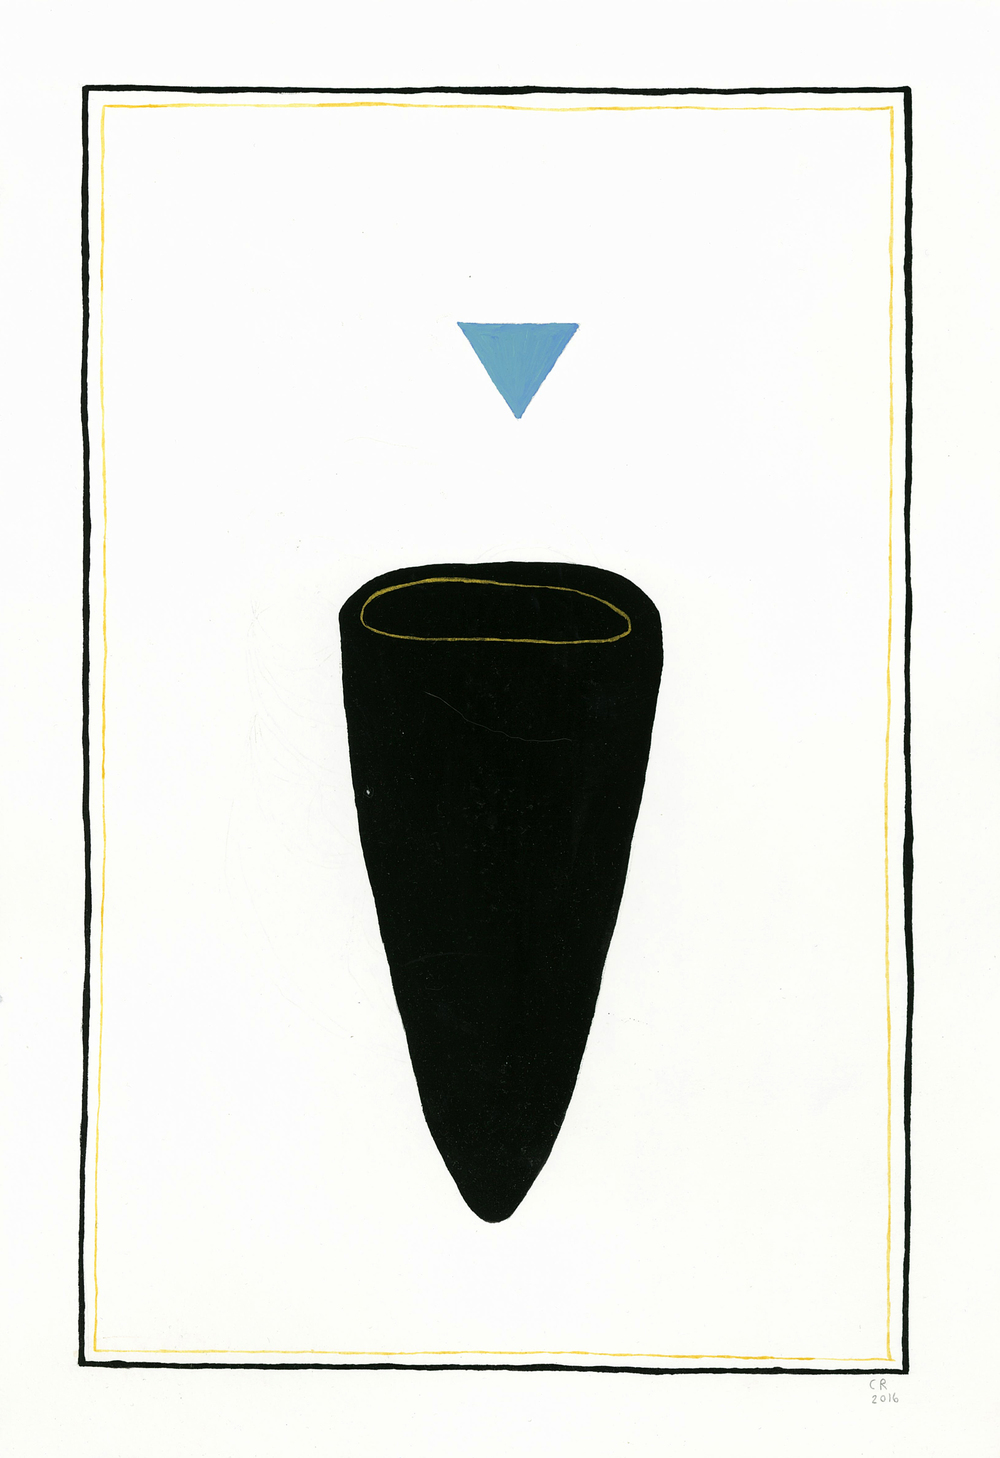 Untitled, Blue Triangle